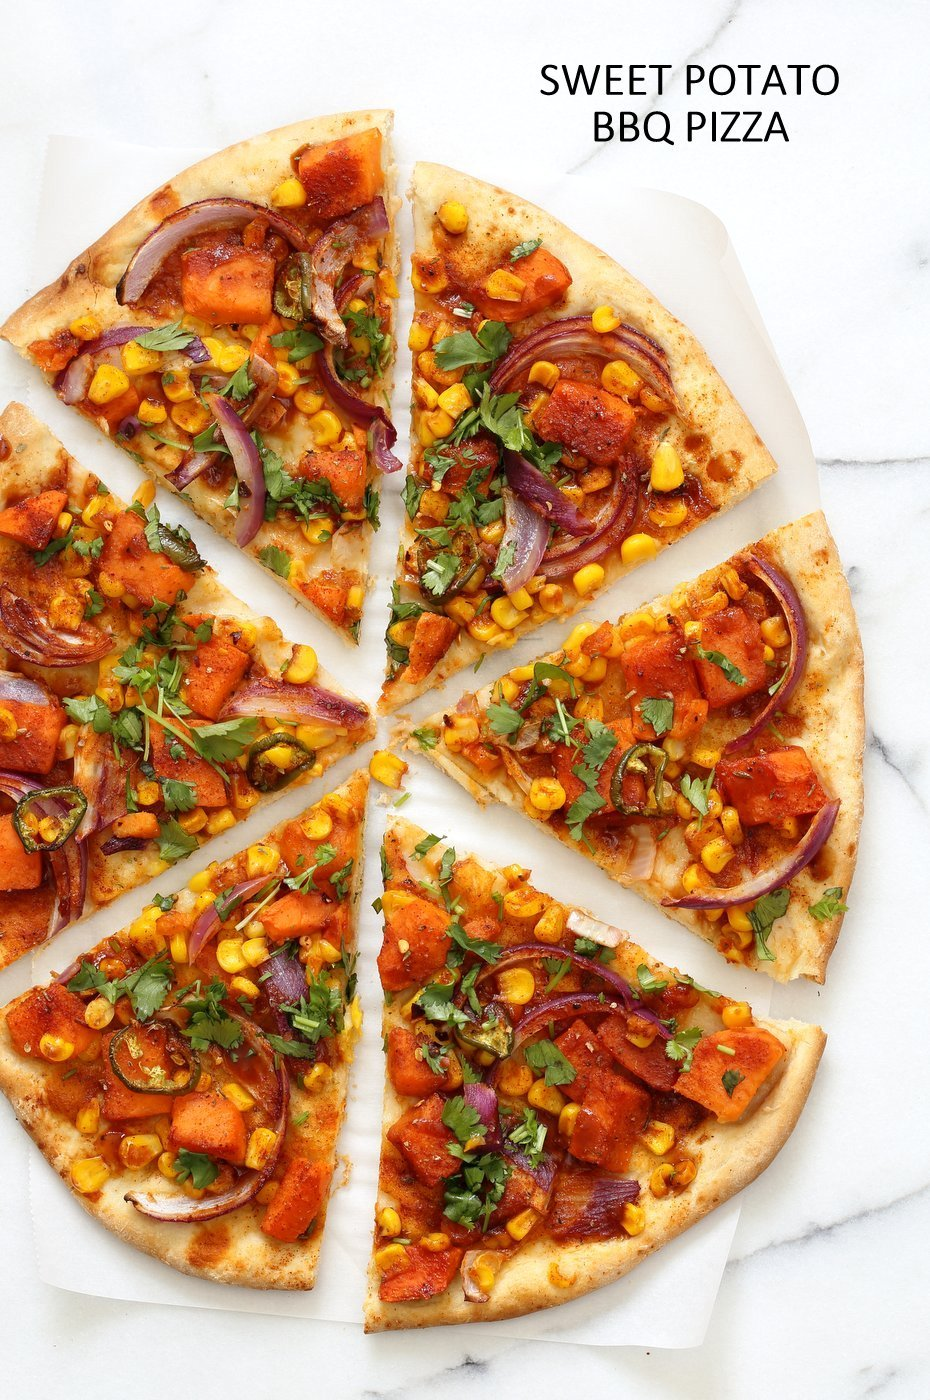 BBQ Sweet Potato Pizza